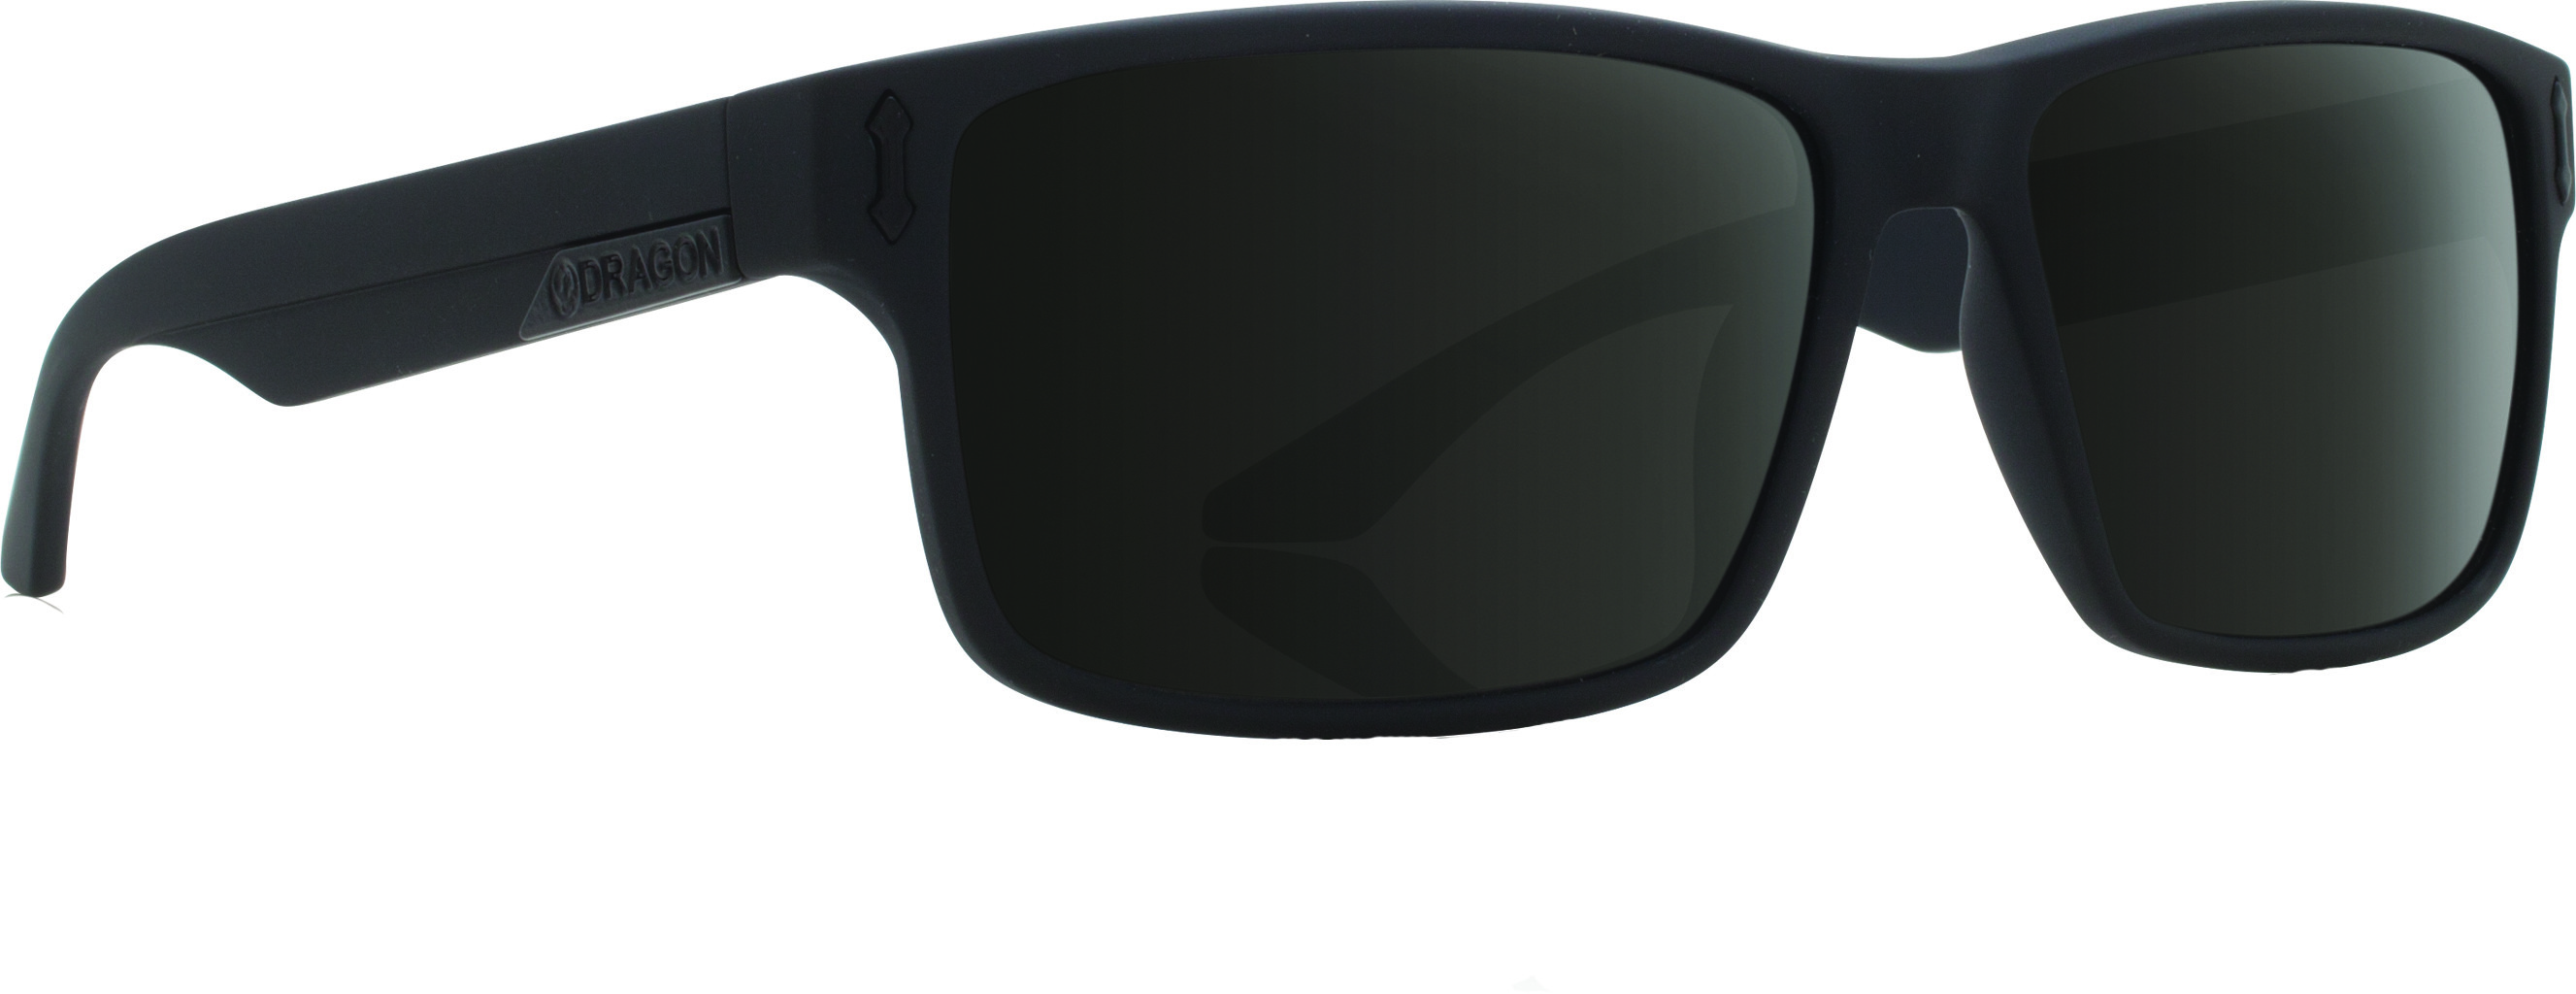 Count Sunglasses Matte Black W/Grey Lens